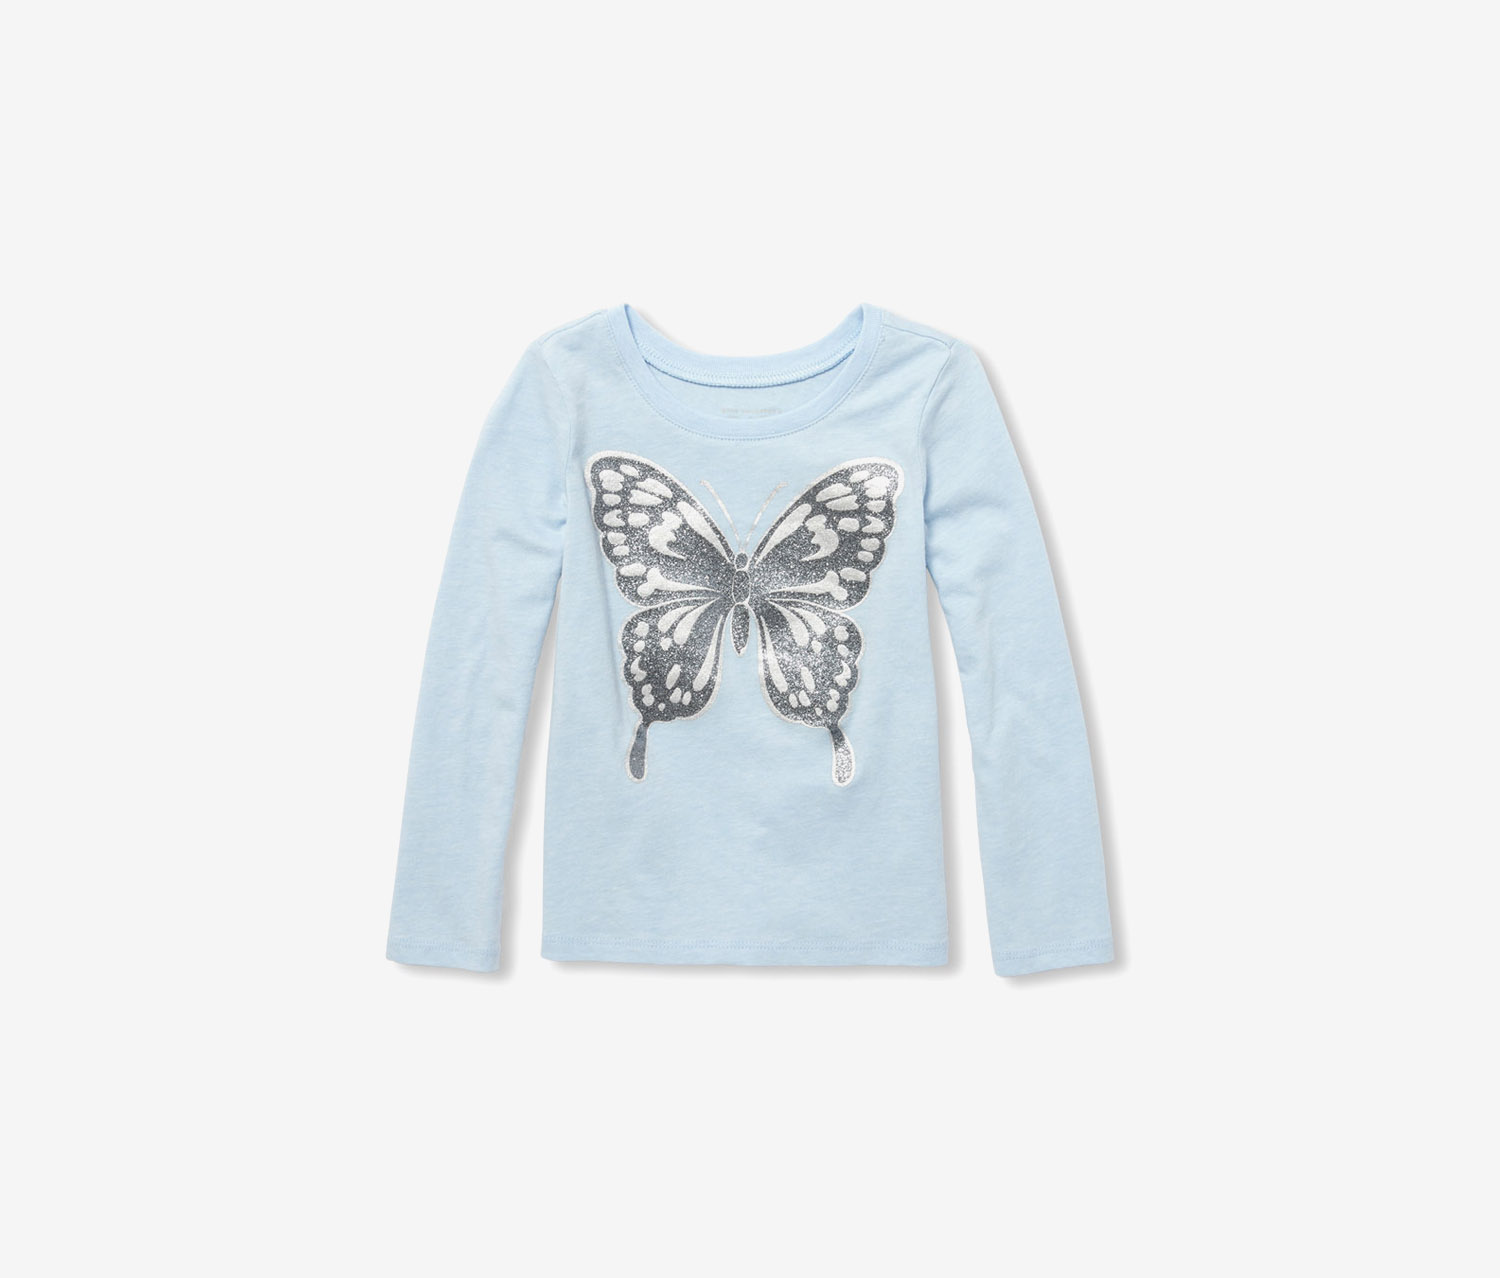 Toddler Girl's Tee, Whirl Wind